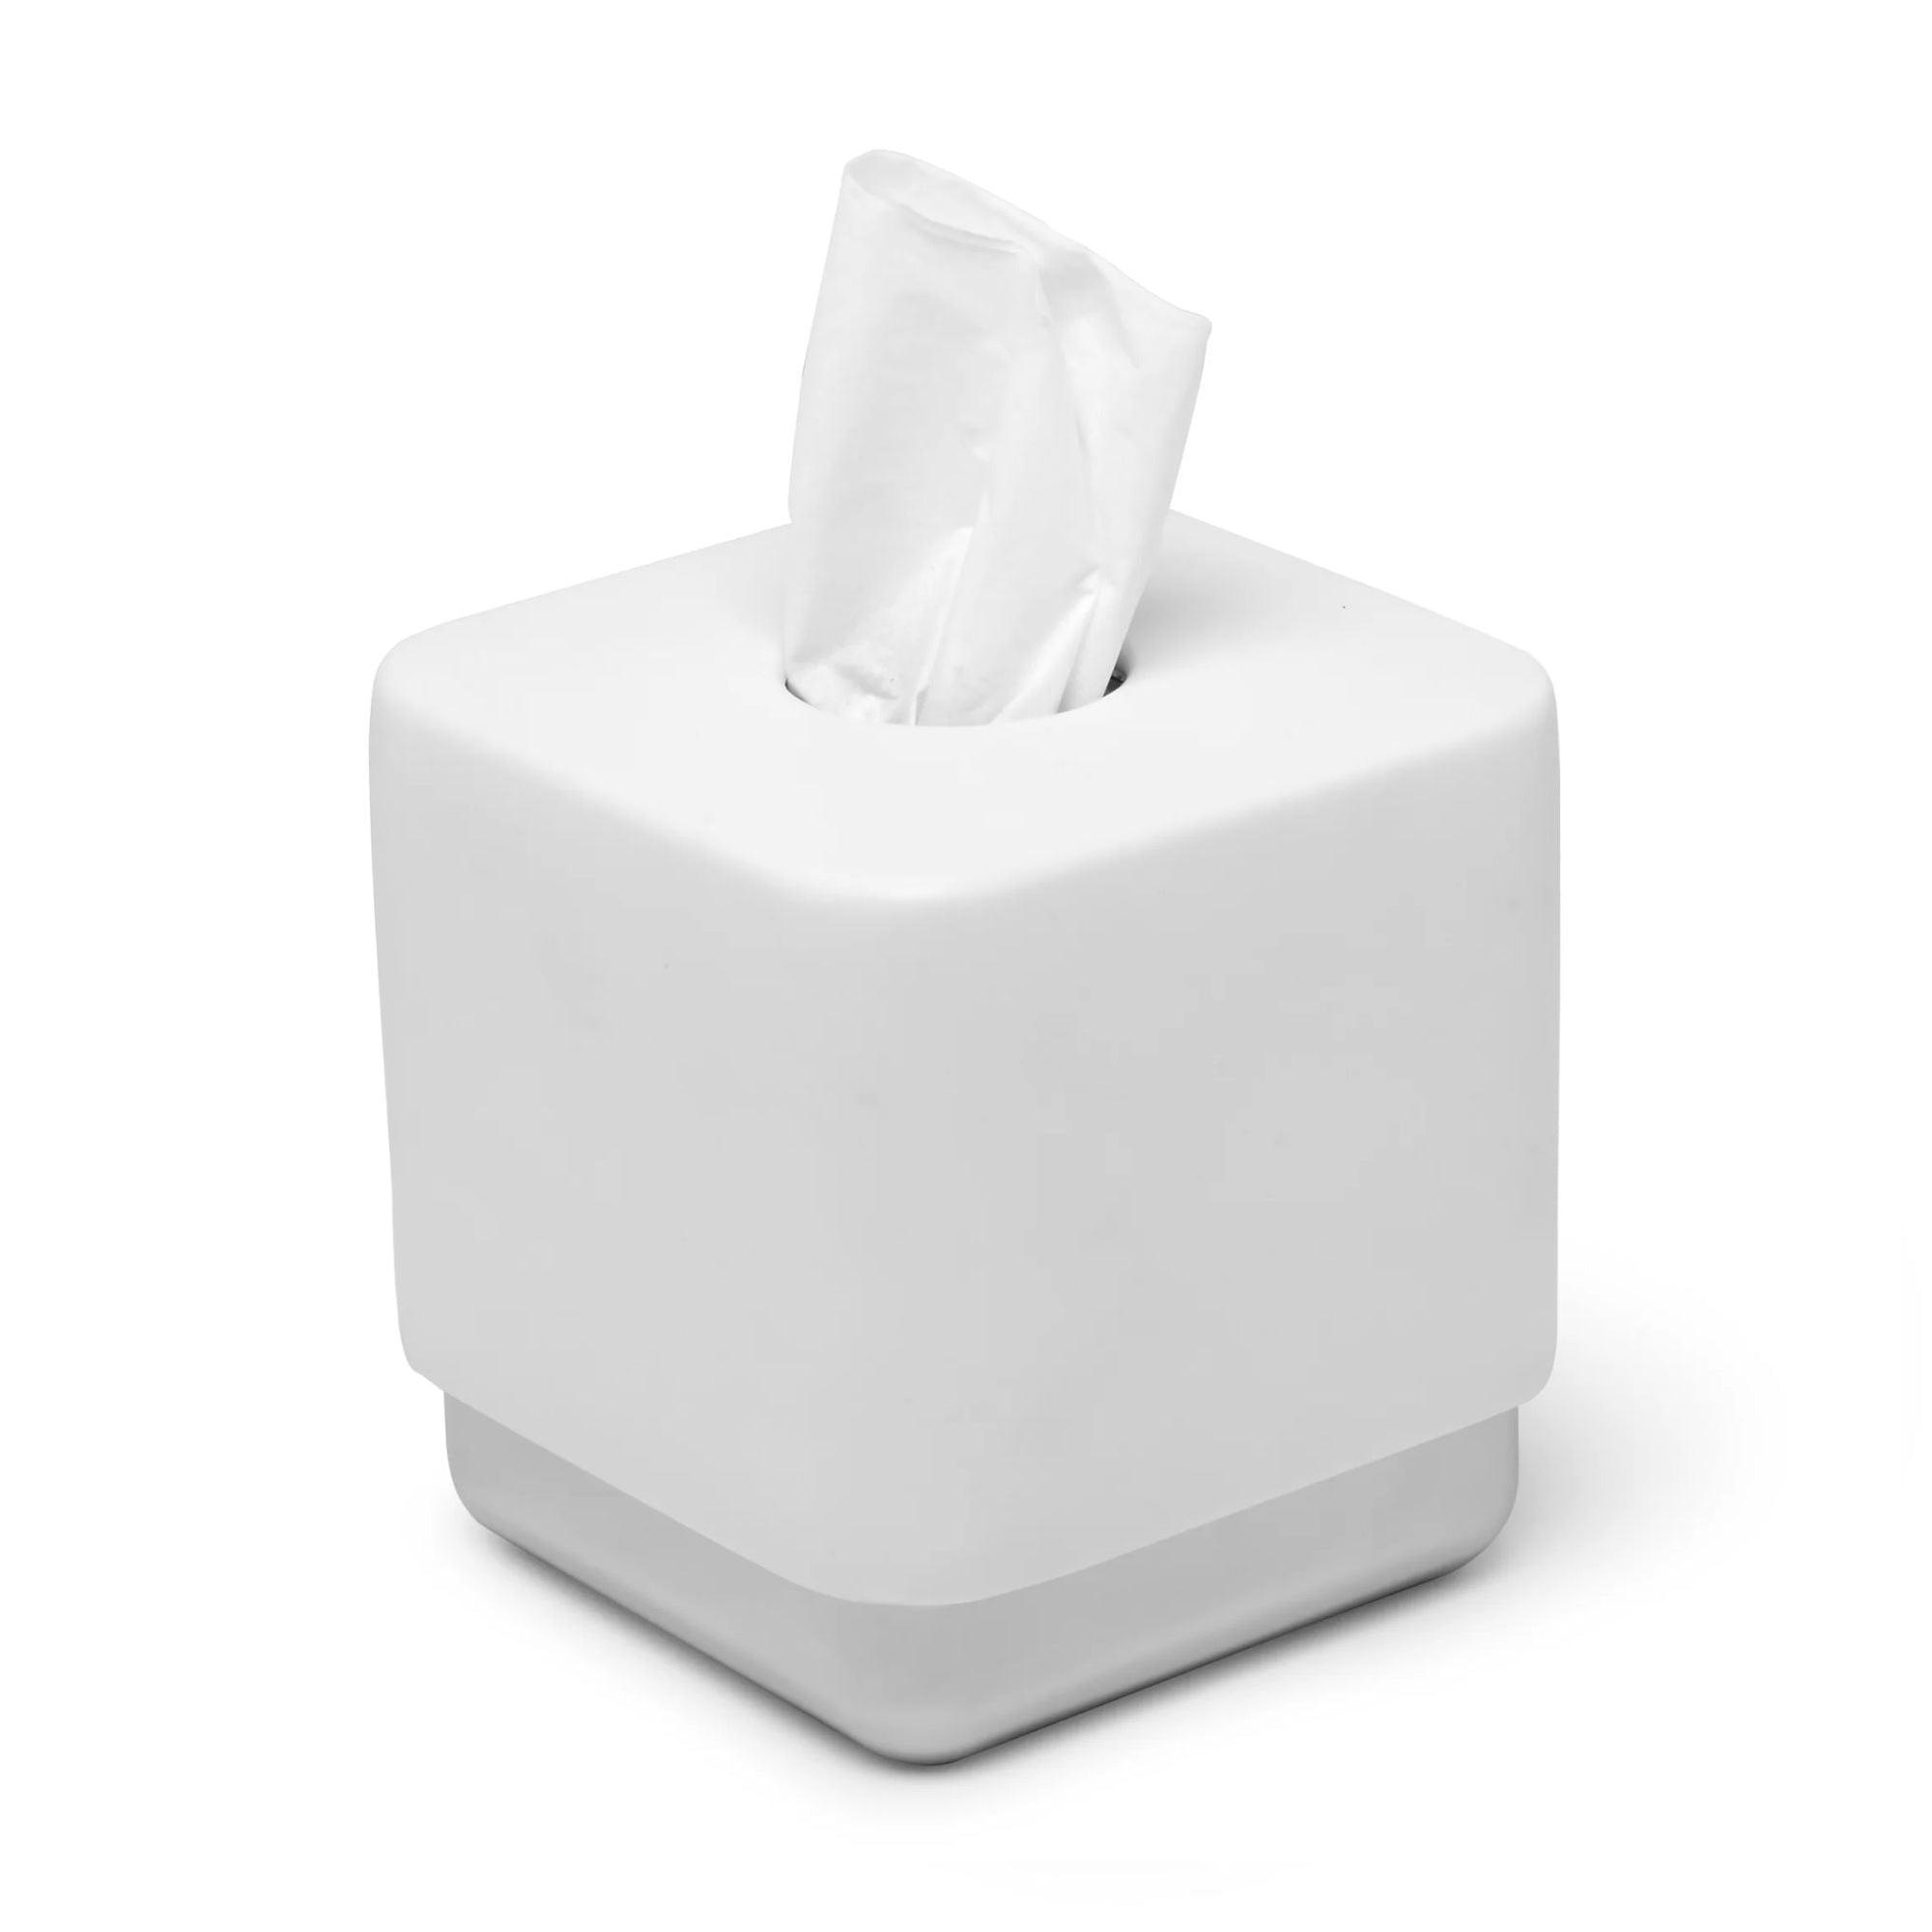 Umbra Junip tissue box holder, white